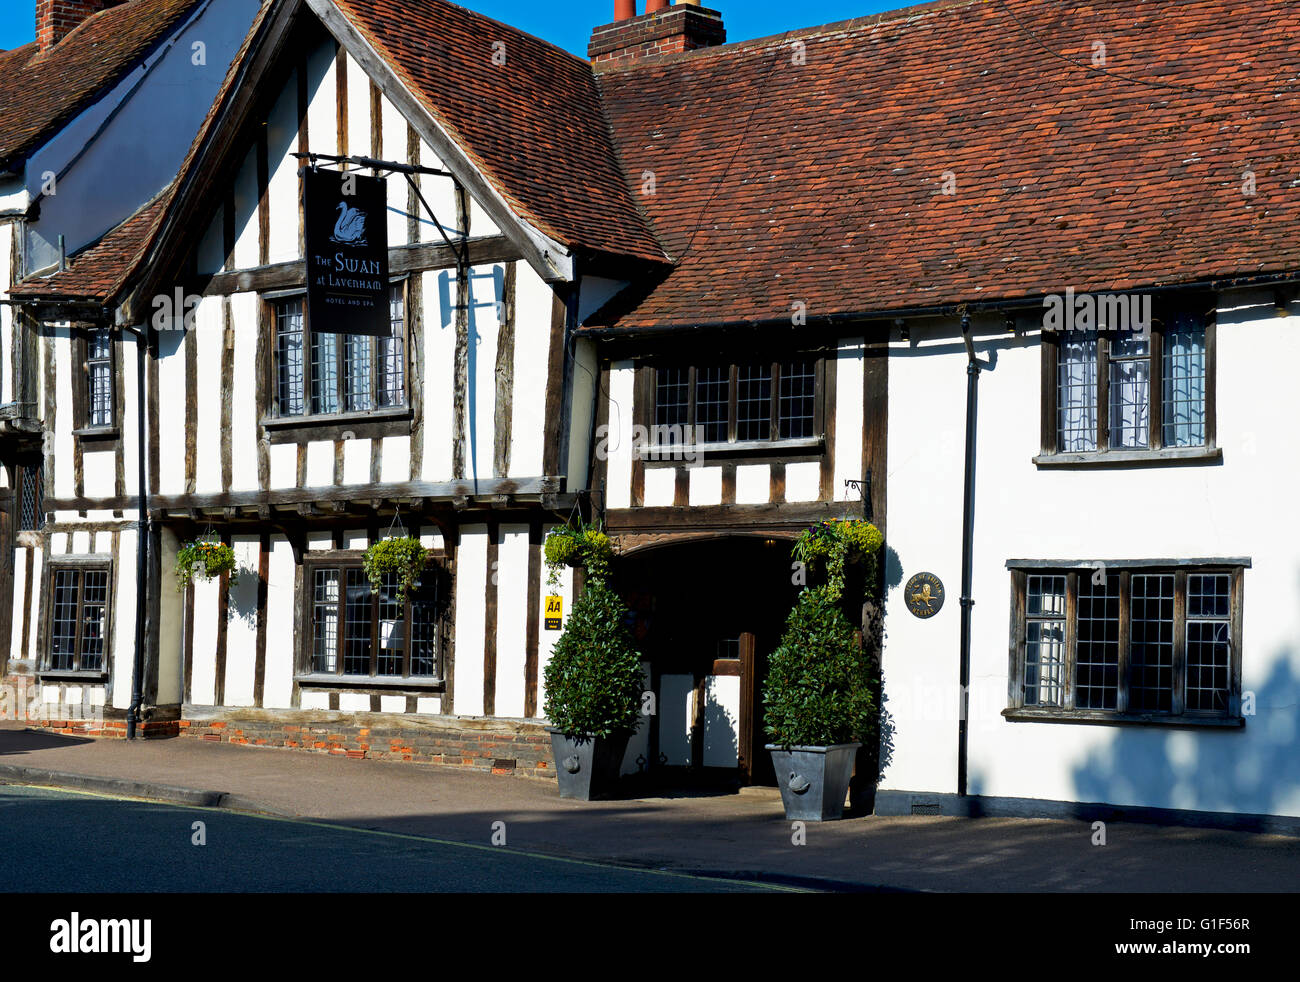 The Swan Hotel and Spa in the village of Lavenham, Suffolk, England UK - Stock Image